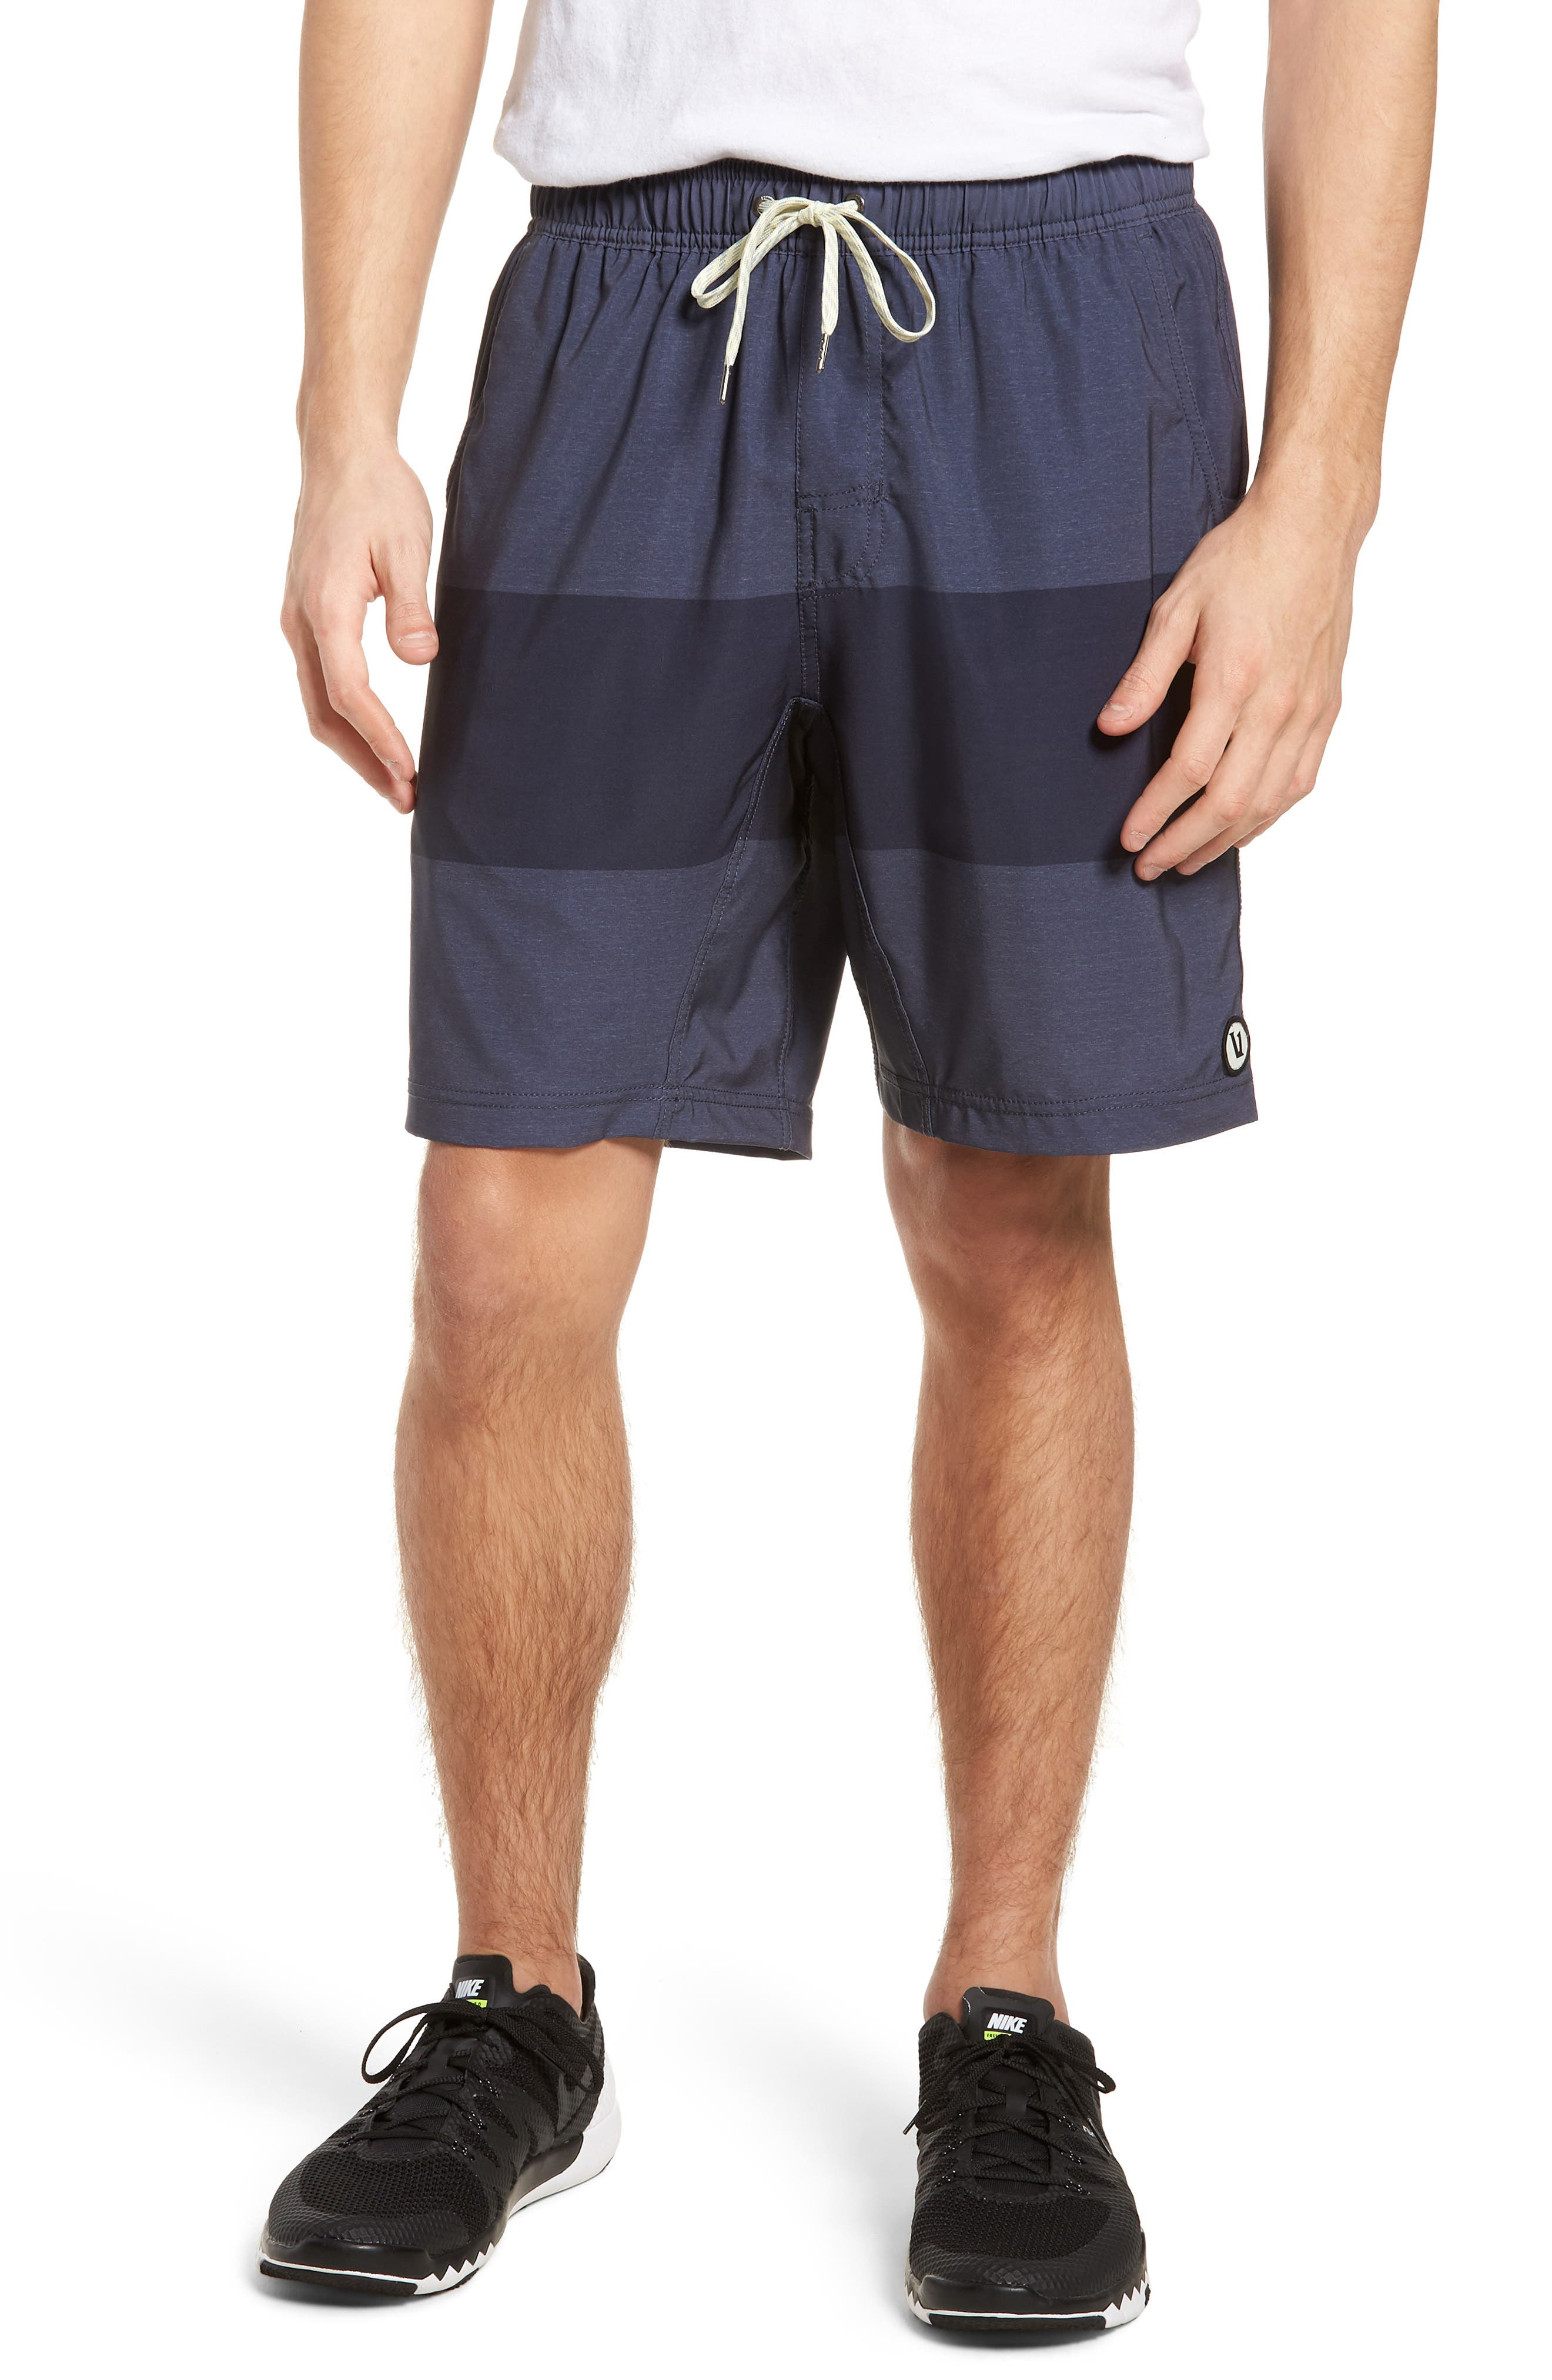 Kore Shorts,                         Main,                         color, Navy Texture Block